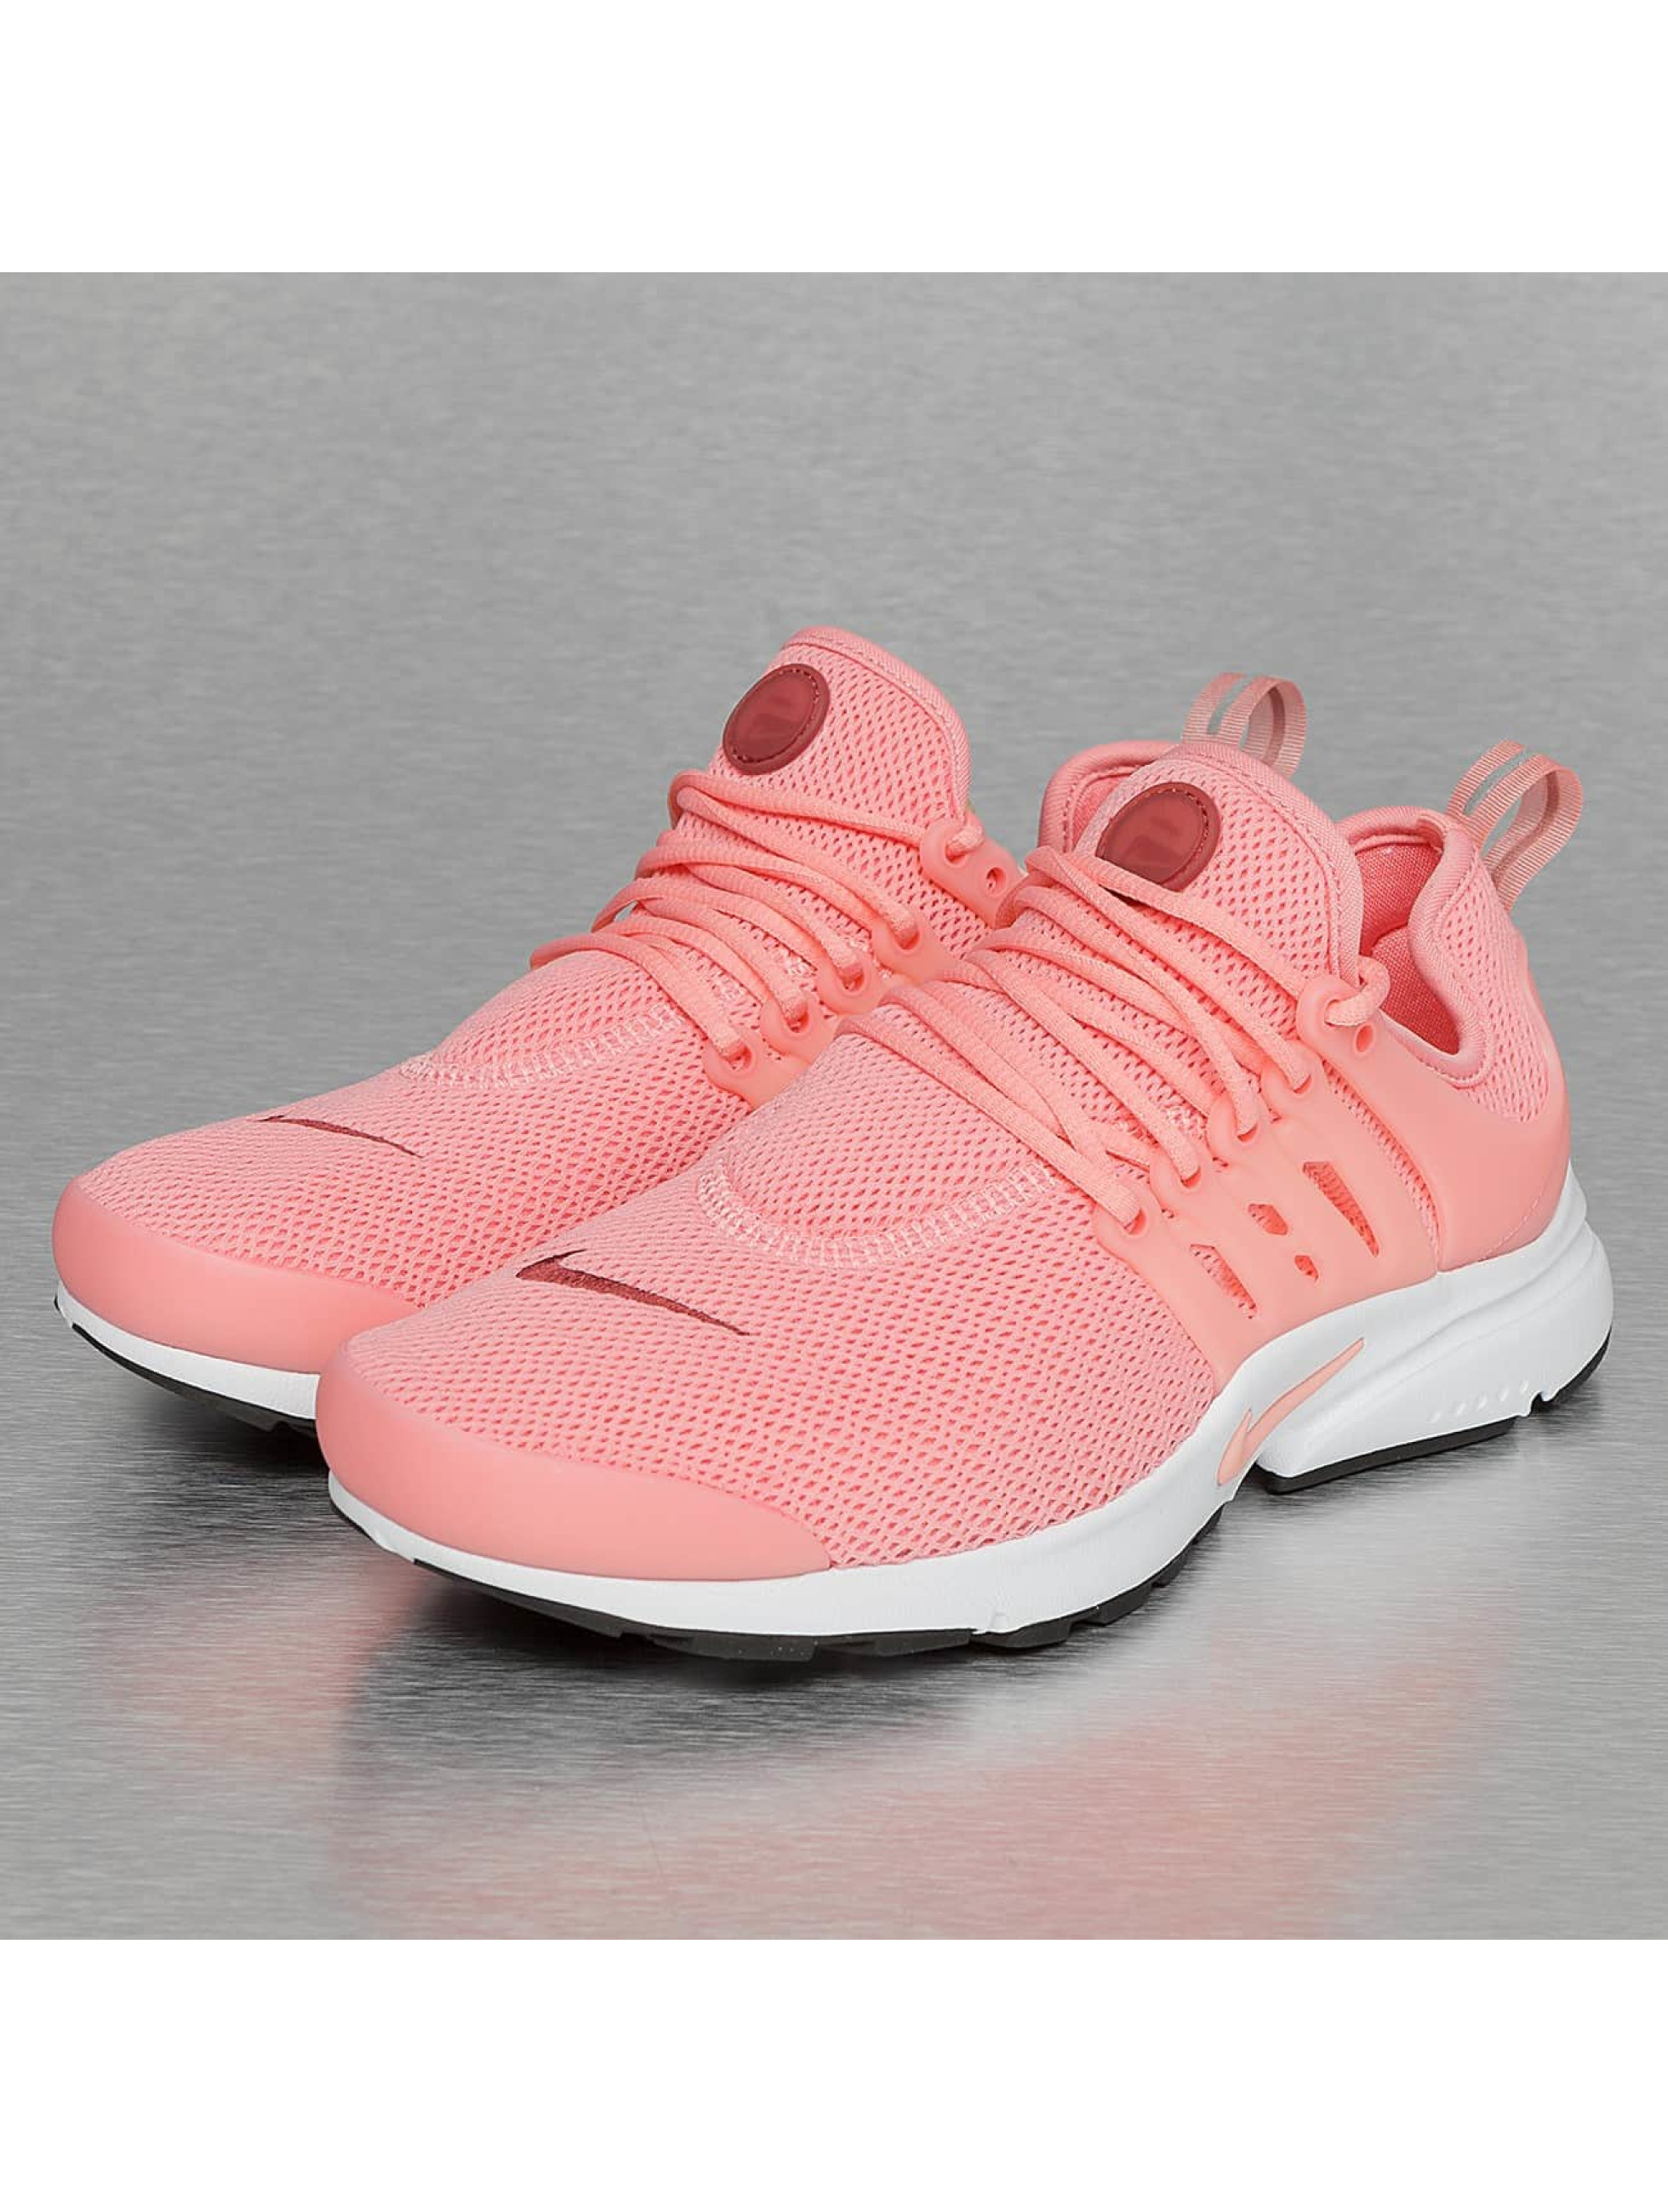 Sneaker Women's Air Presto in rosa